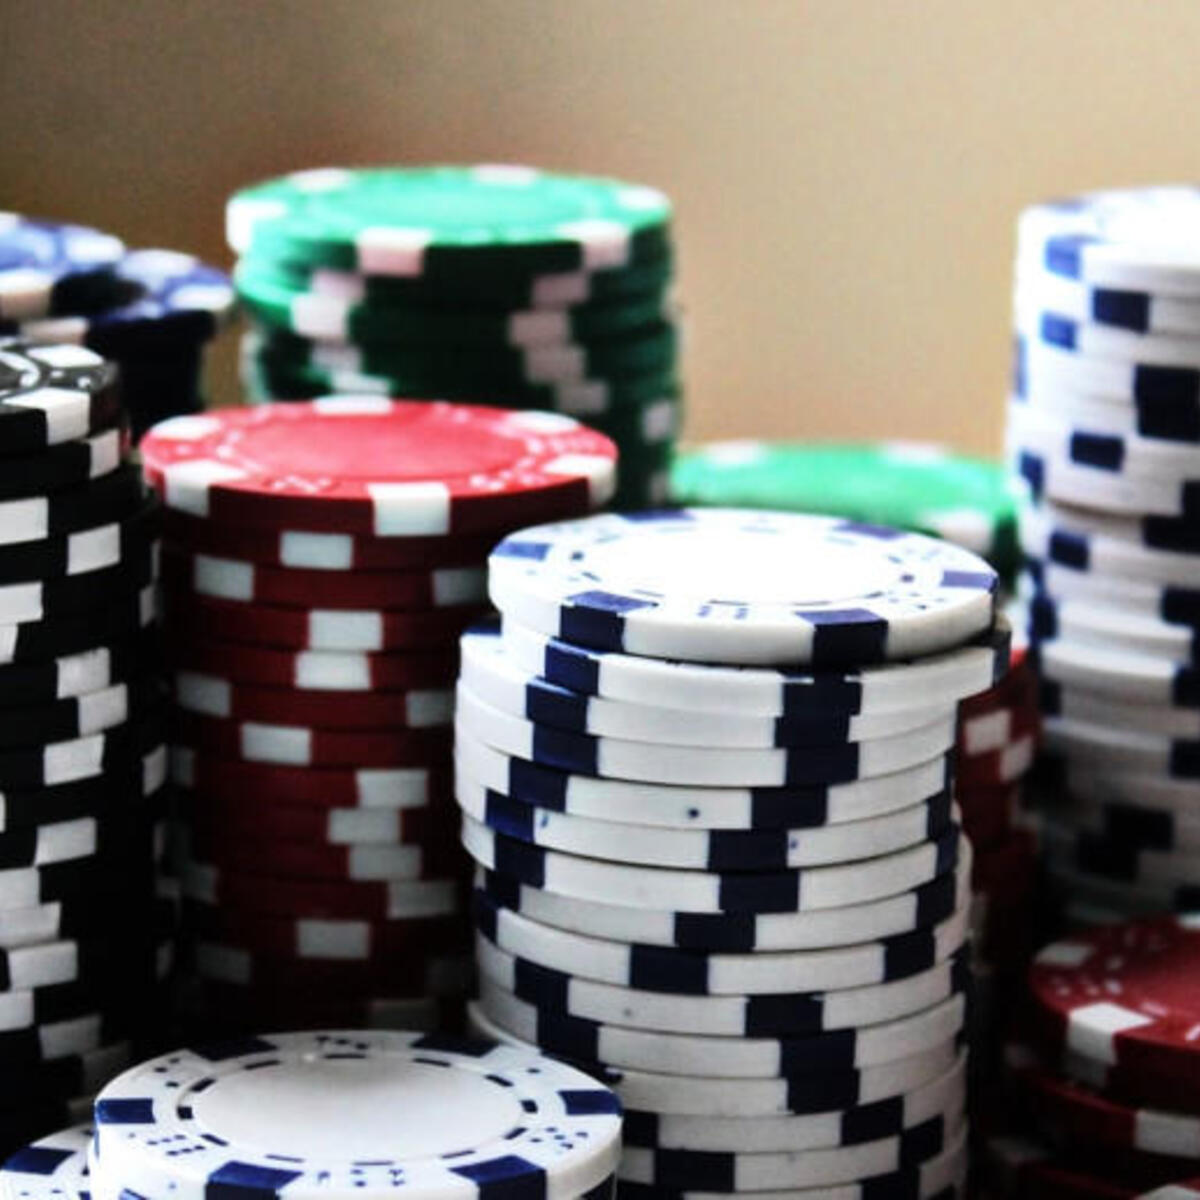 DOES INSURANCE COVER GAMBLING ADDICTION TREATMENT